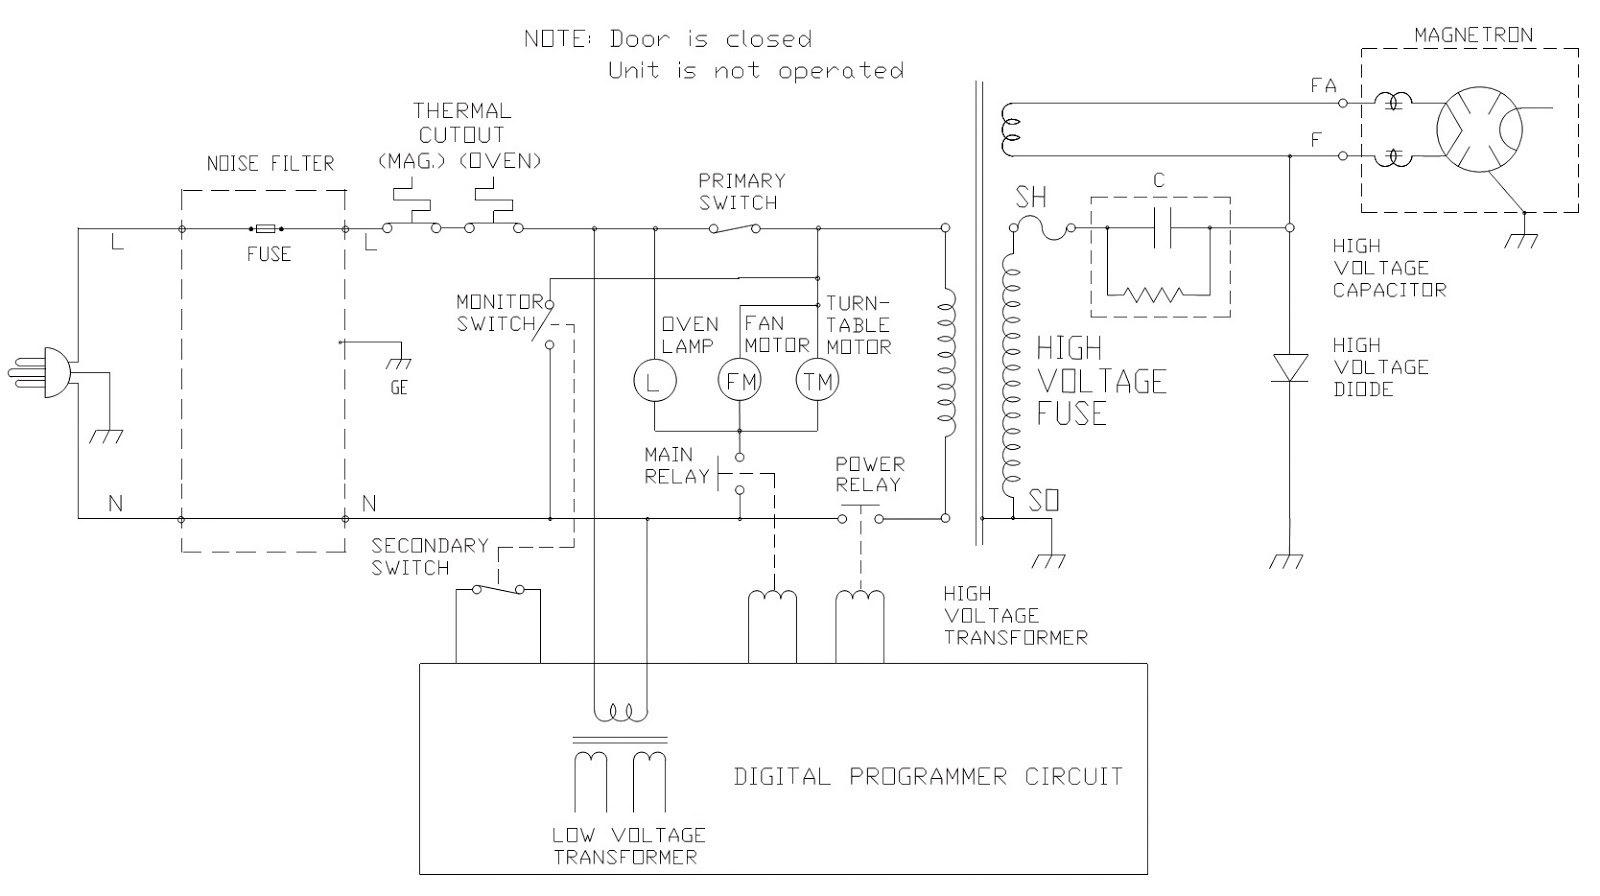 Zing Ear Ze 208s6 Switch 3 Speed Wiring Diagram 268s6 Replacement Diagrams